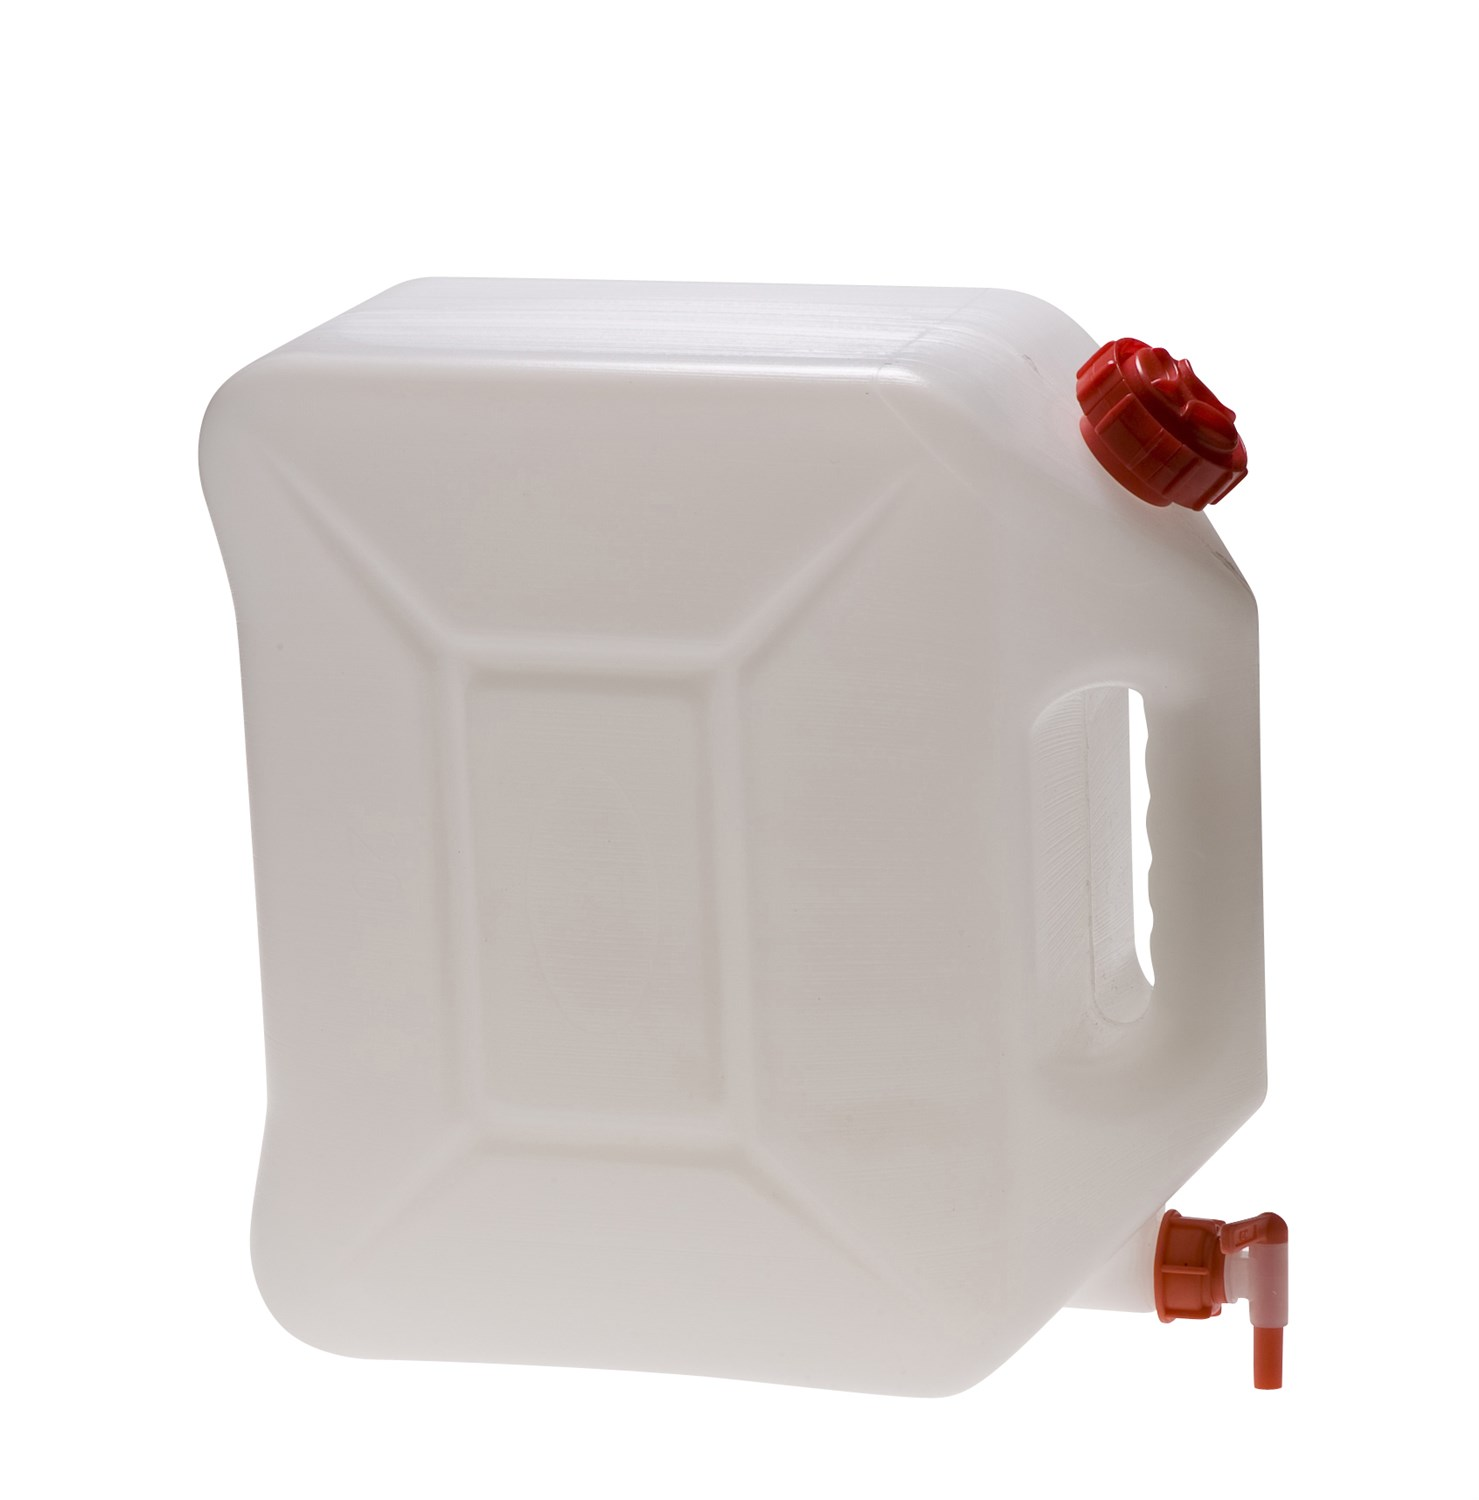 Cao outdoor - Jerrican alimentaire 20l avec robinet ...